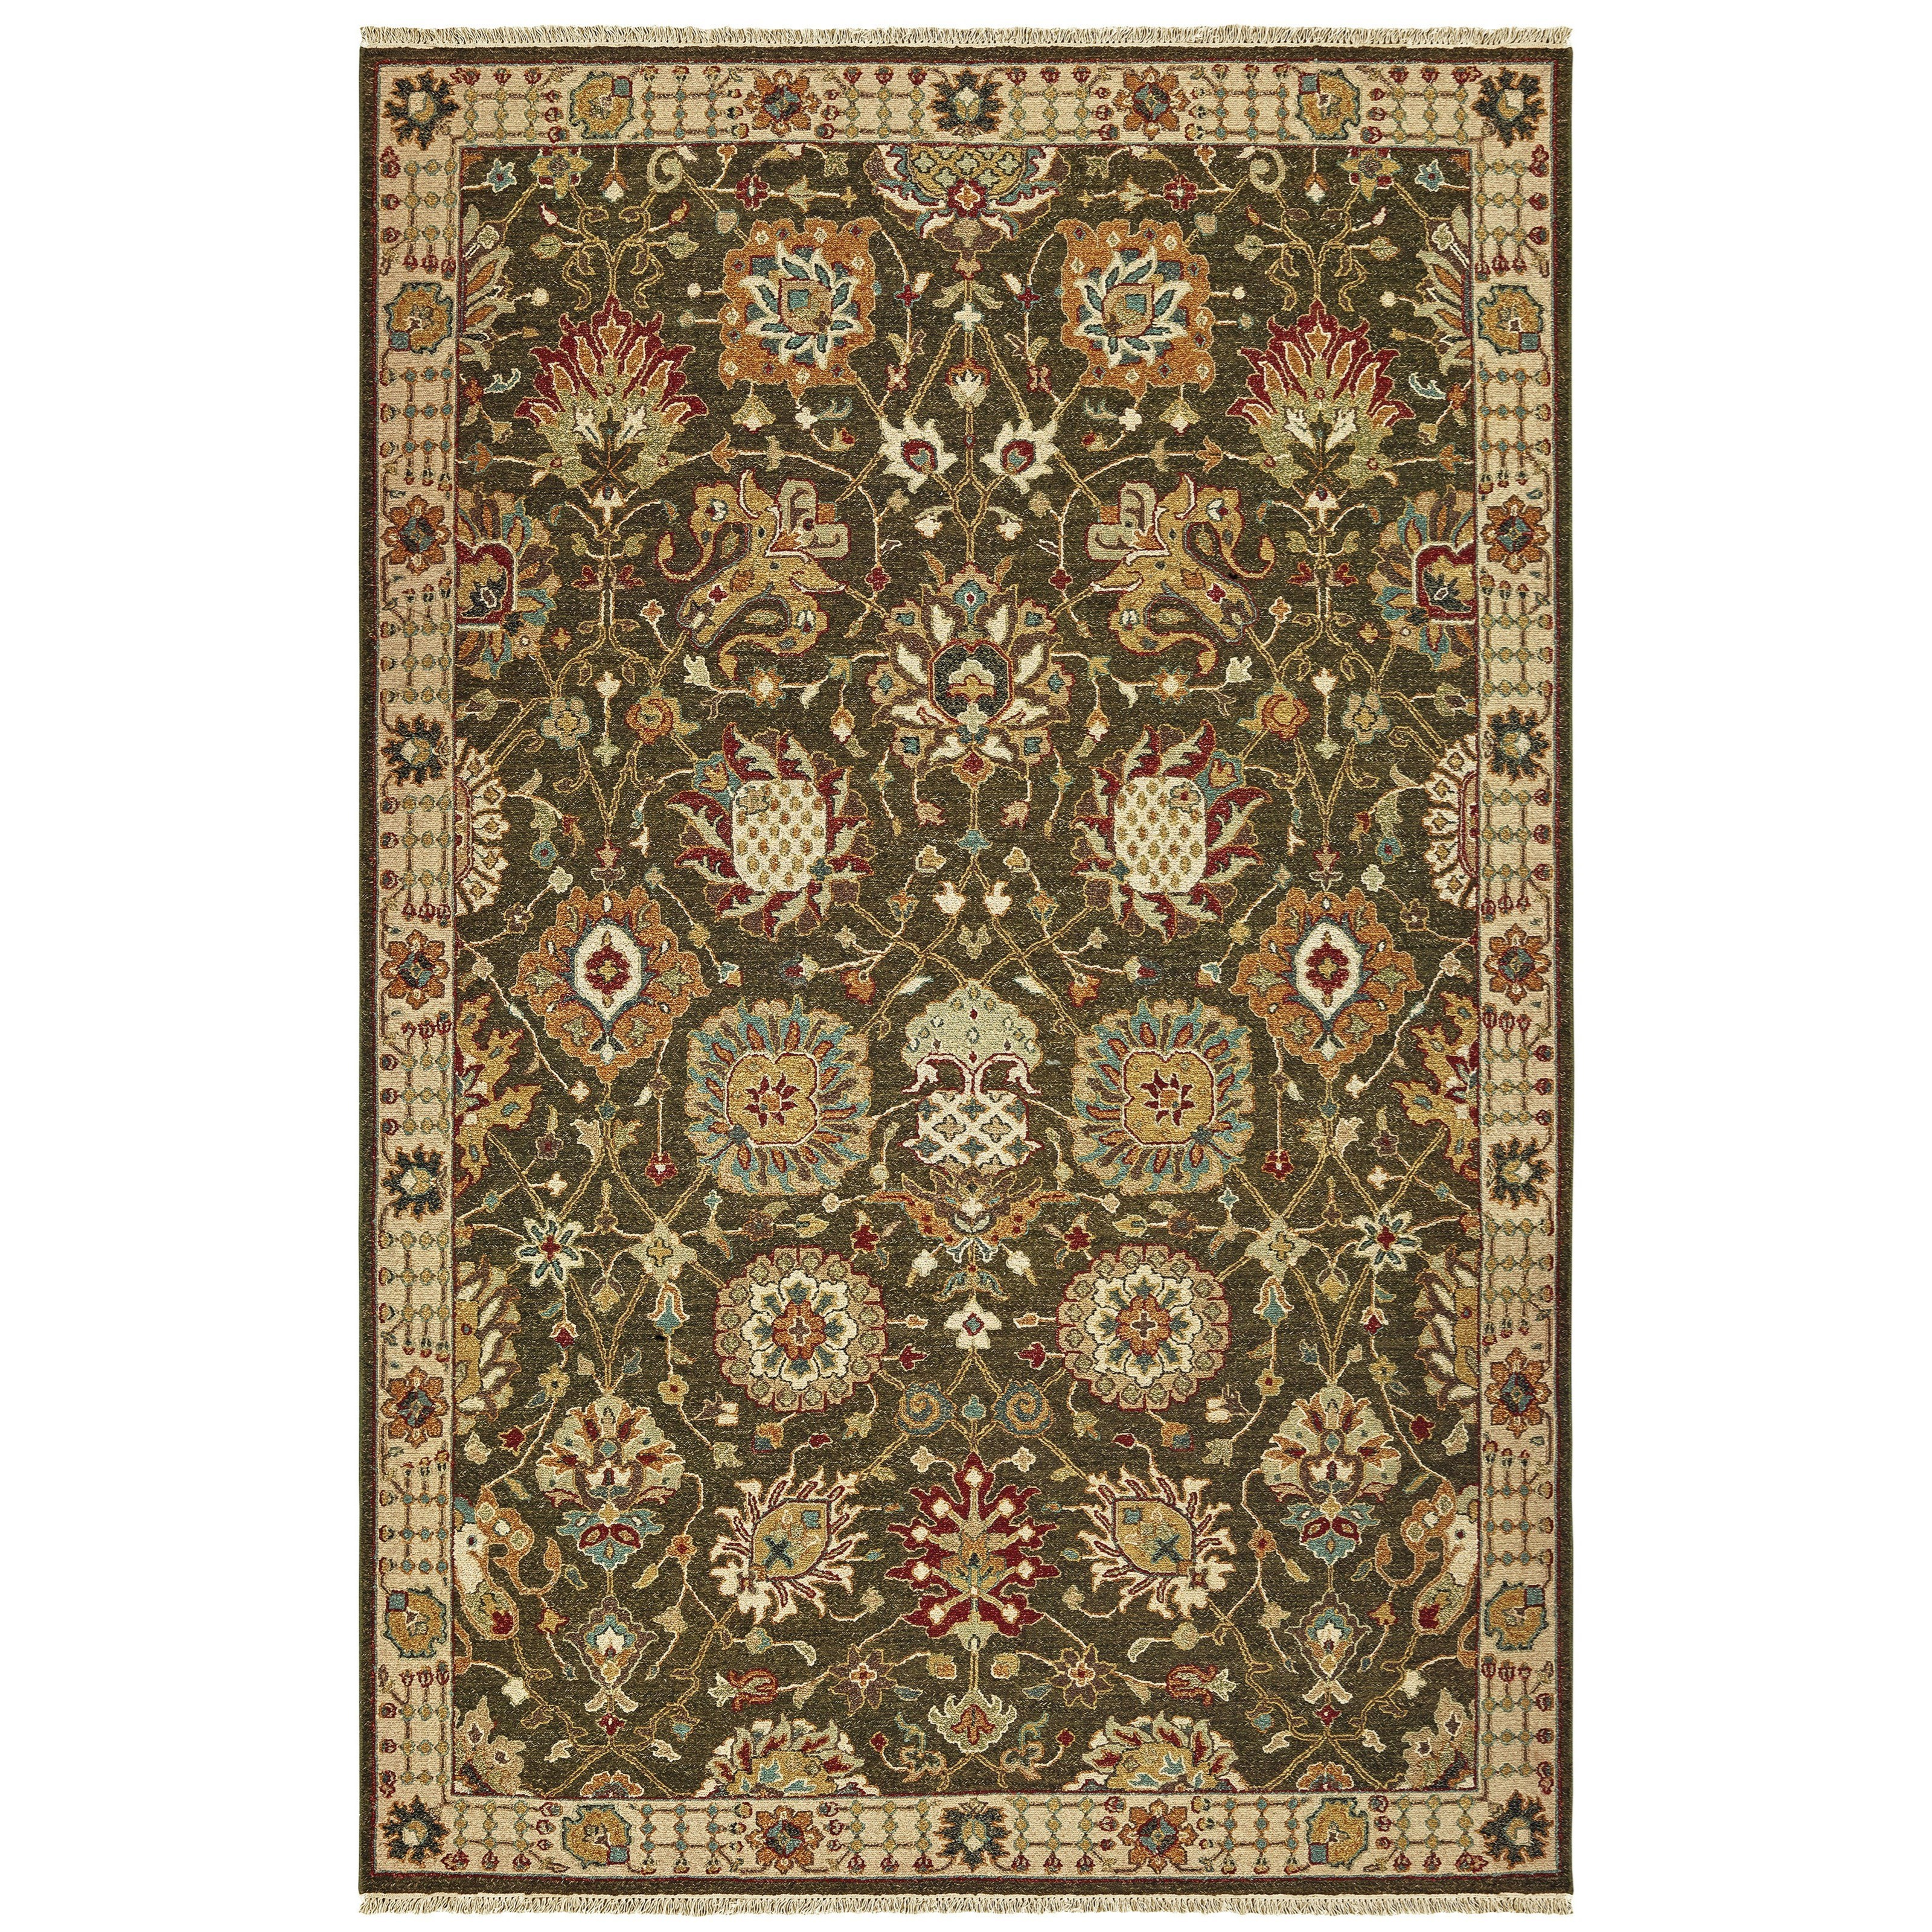 Angora 9' X 12' Rectangle Rug by Oriental Weavers at Steger's Furniture